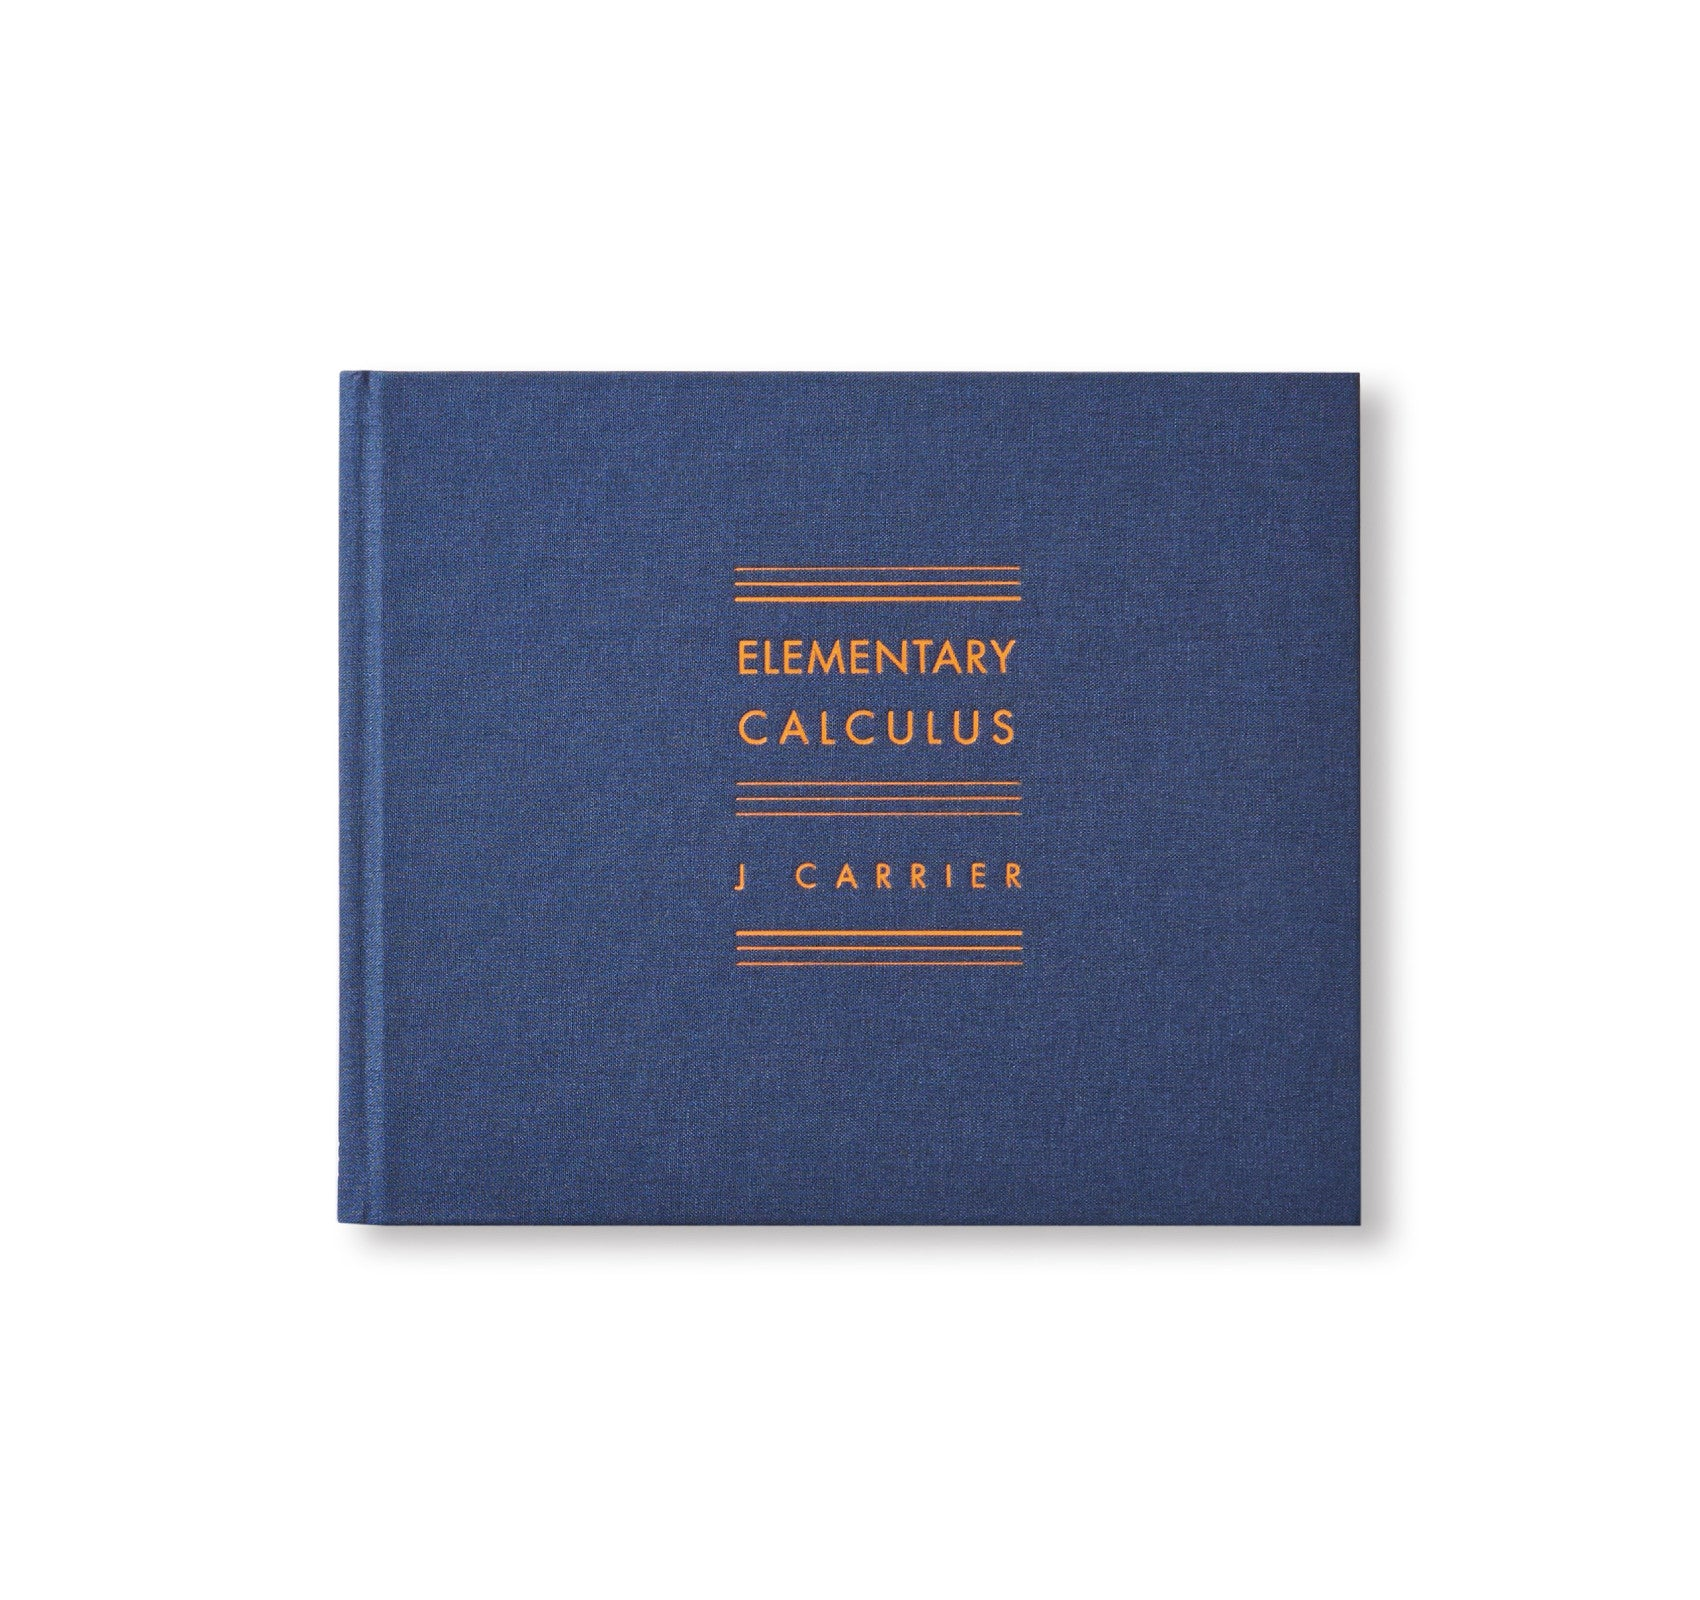 ELEMENTARY CALCULUS by J Carrier